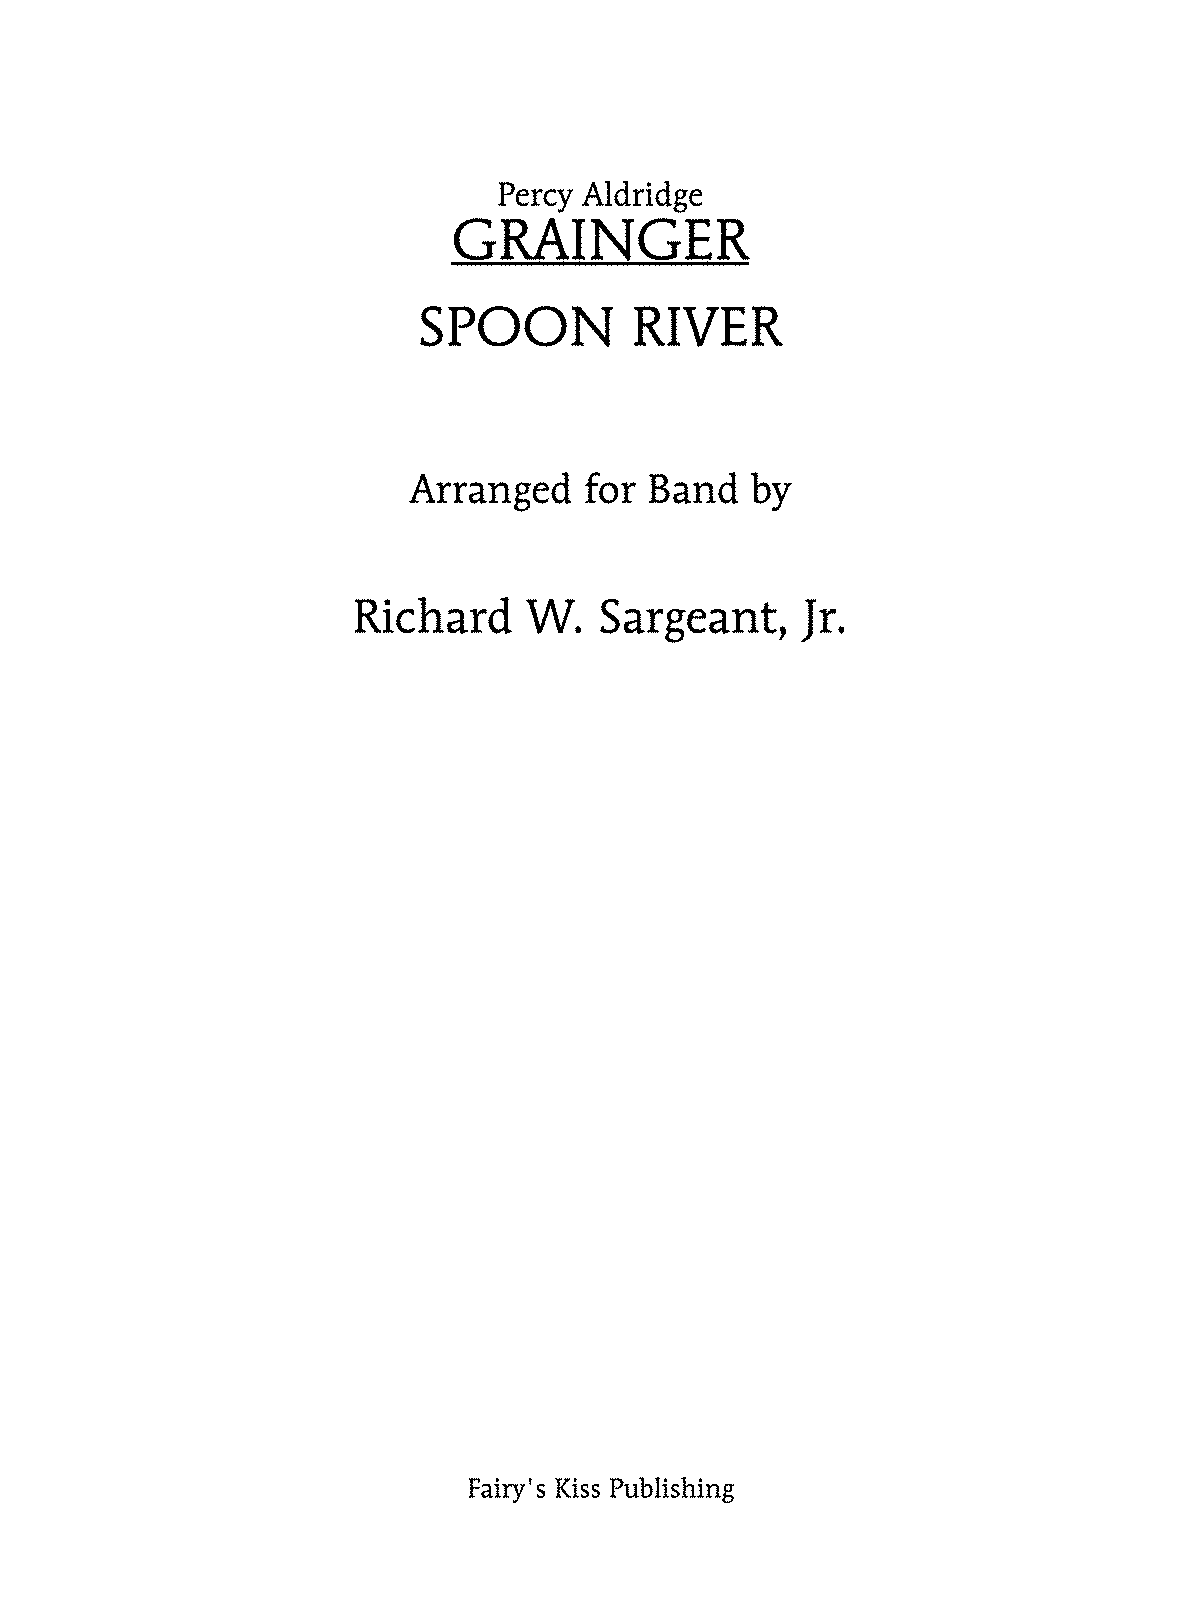 Spoon River Grainger Percy